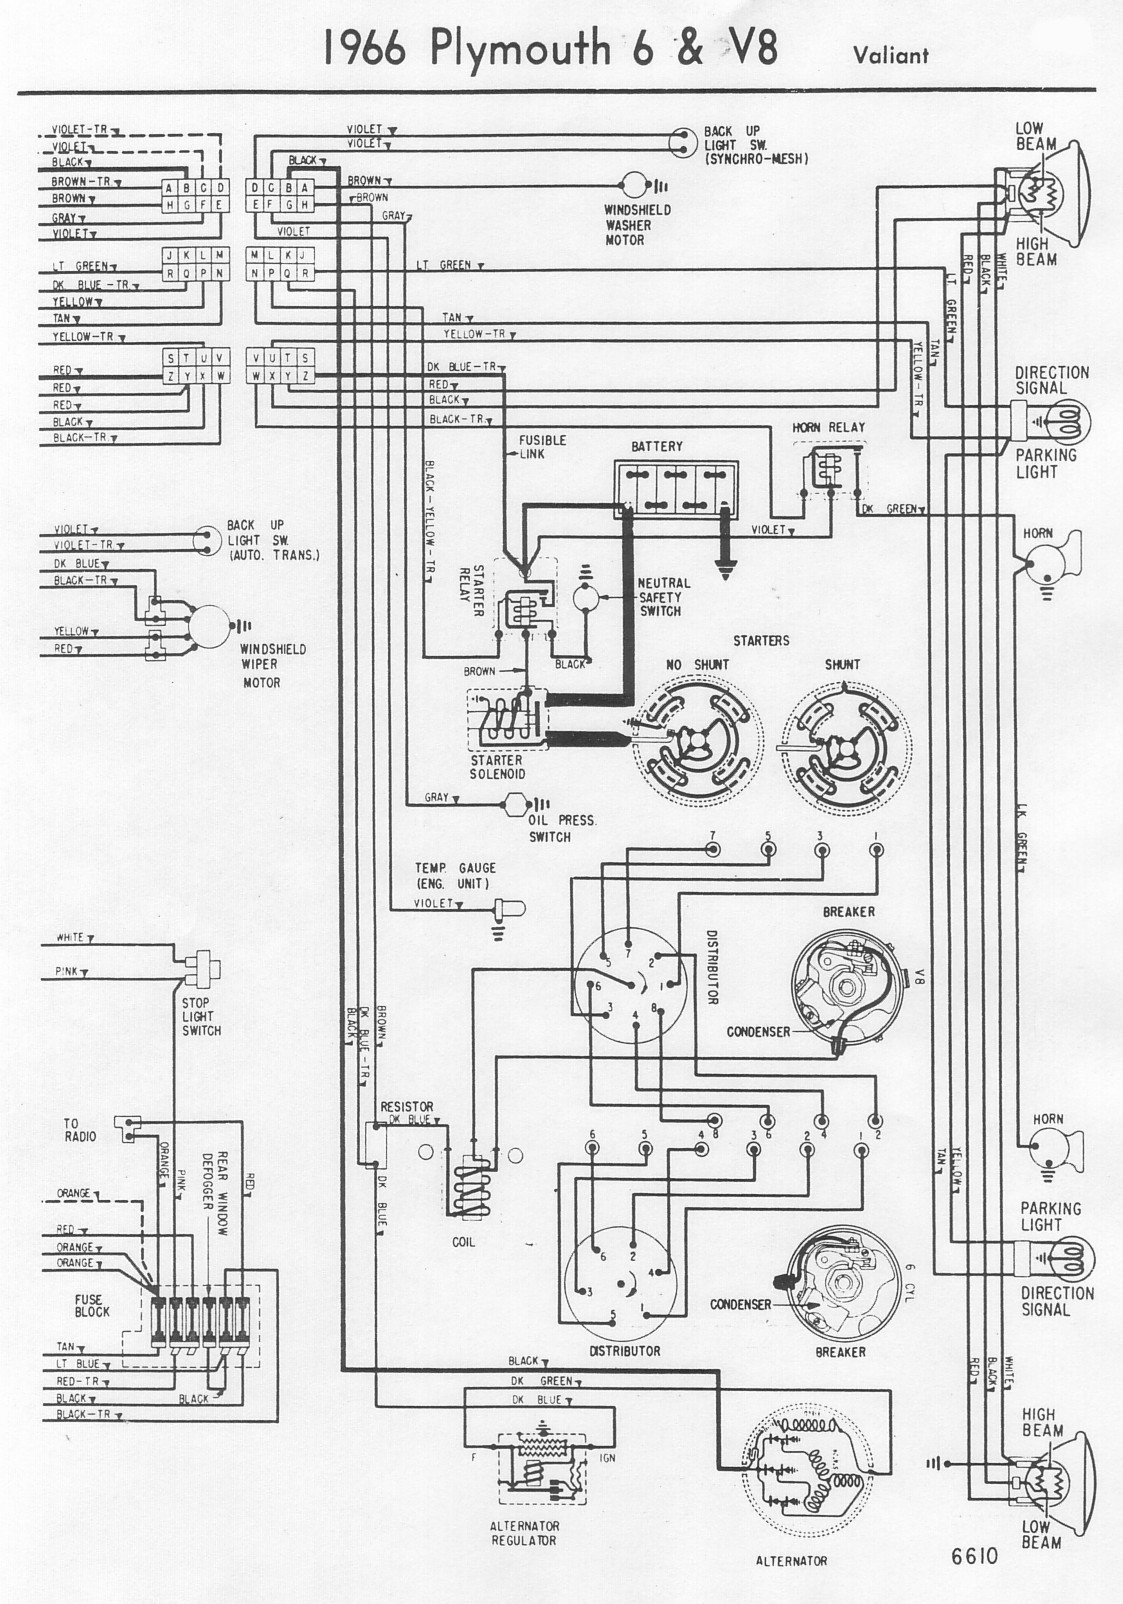 1963 cadillac wiring diagrams 1963 automotive wiring diagrams description 66valiantb cadillac wiring diagrams